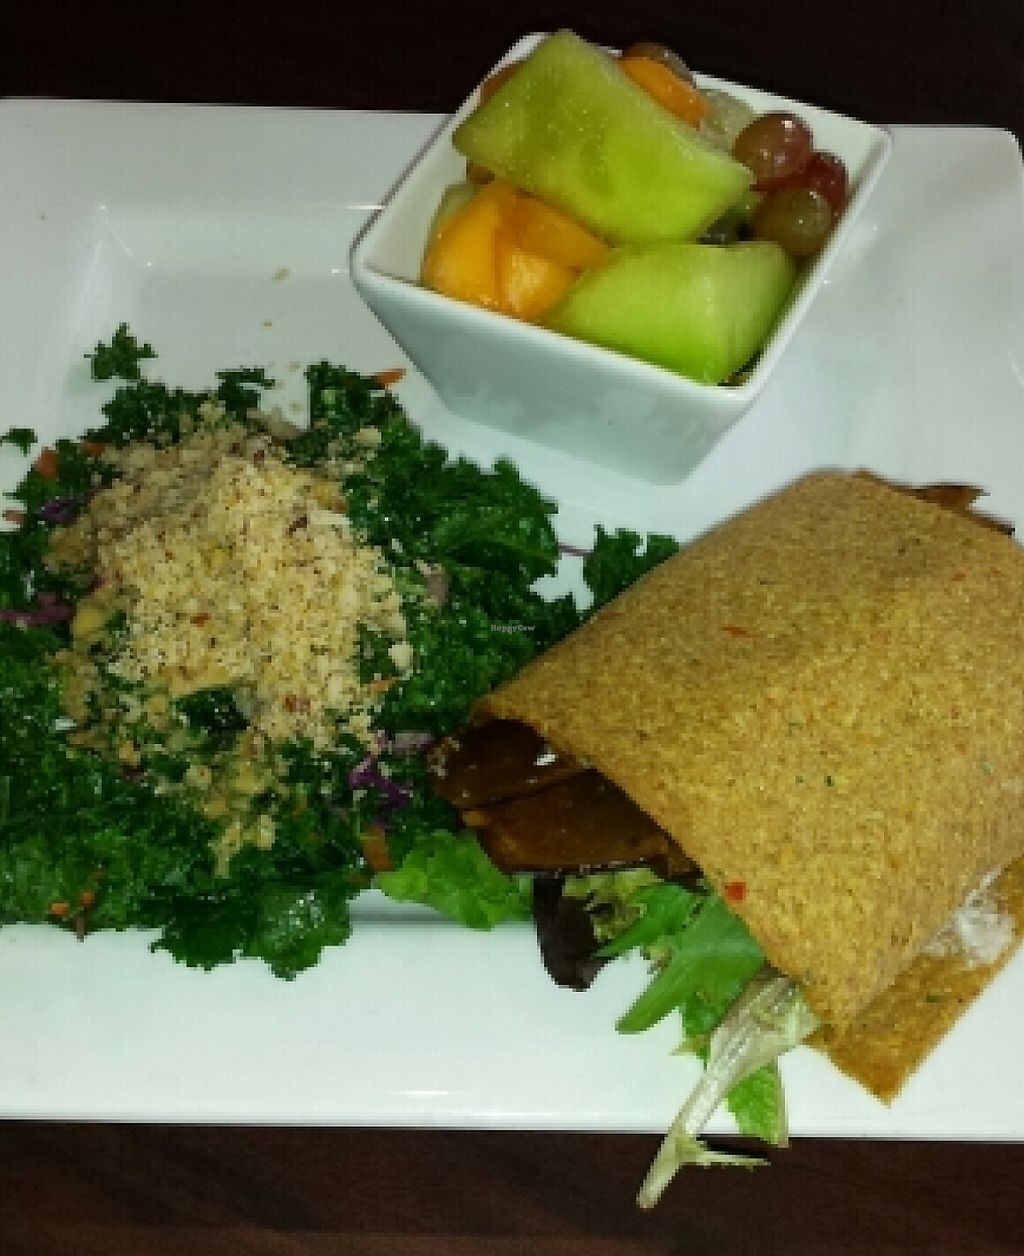 """Photo of Good Life Cafe  by <a href=""""/members/profile/nellie1273"""">nellie1273</a> <br/>Eggplant bacon wrap with kale salad <br/> November 17, 2015  - <a href='/contact/abuse/image/26543/224358'>Report</a>"""